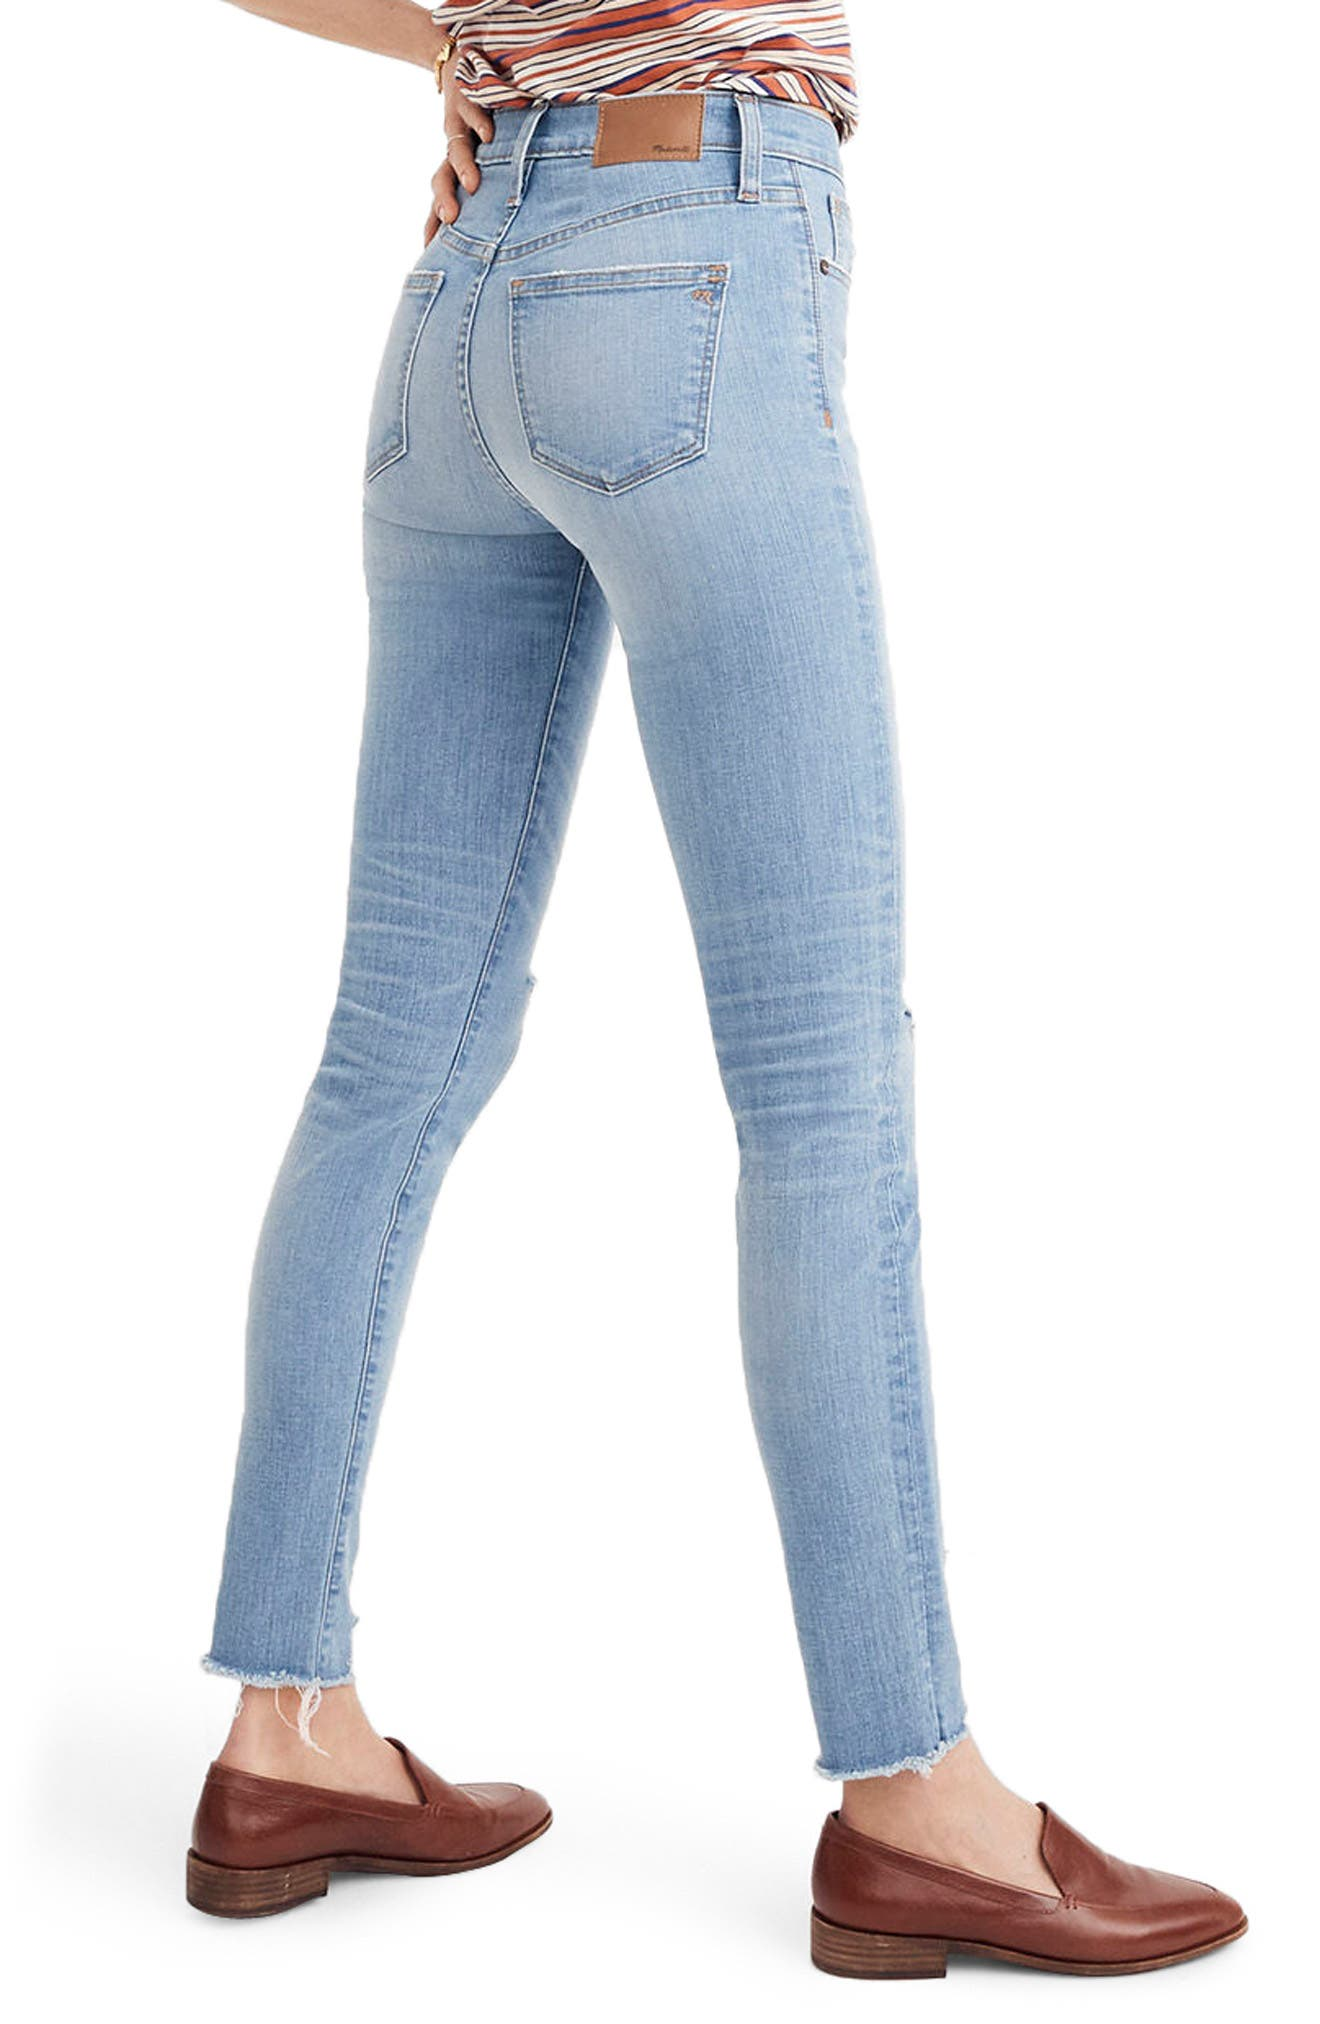 9-Inch High Waist Skinny Jeans,                             Alternate thumbnail 2, color,                             900